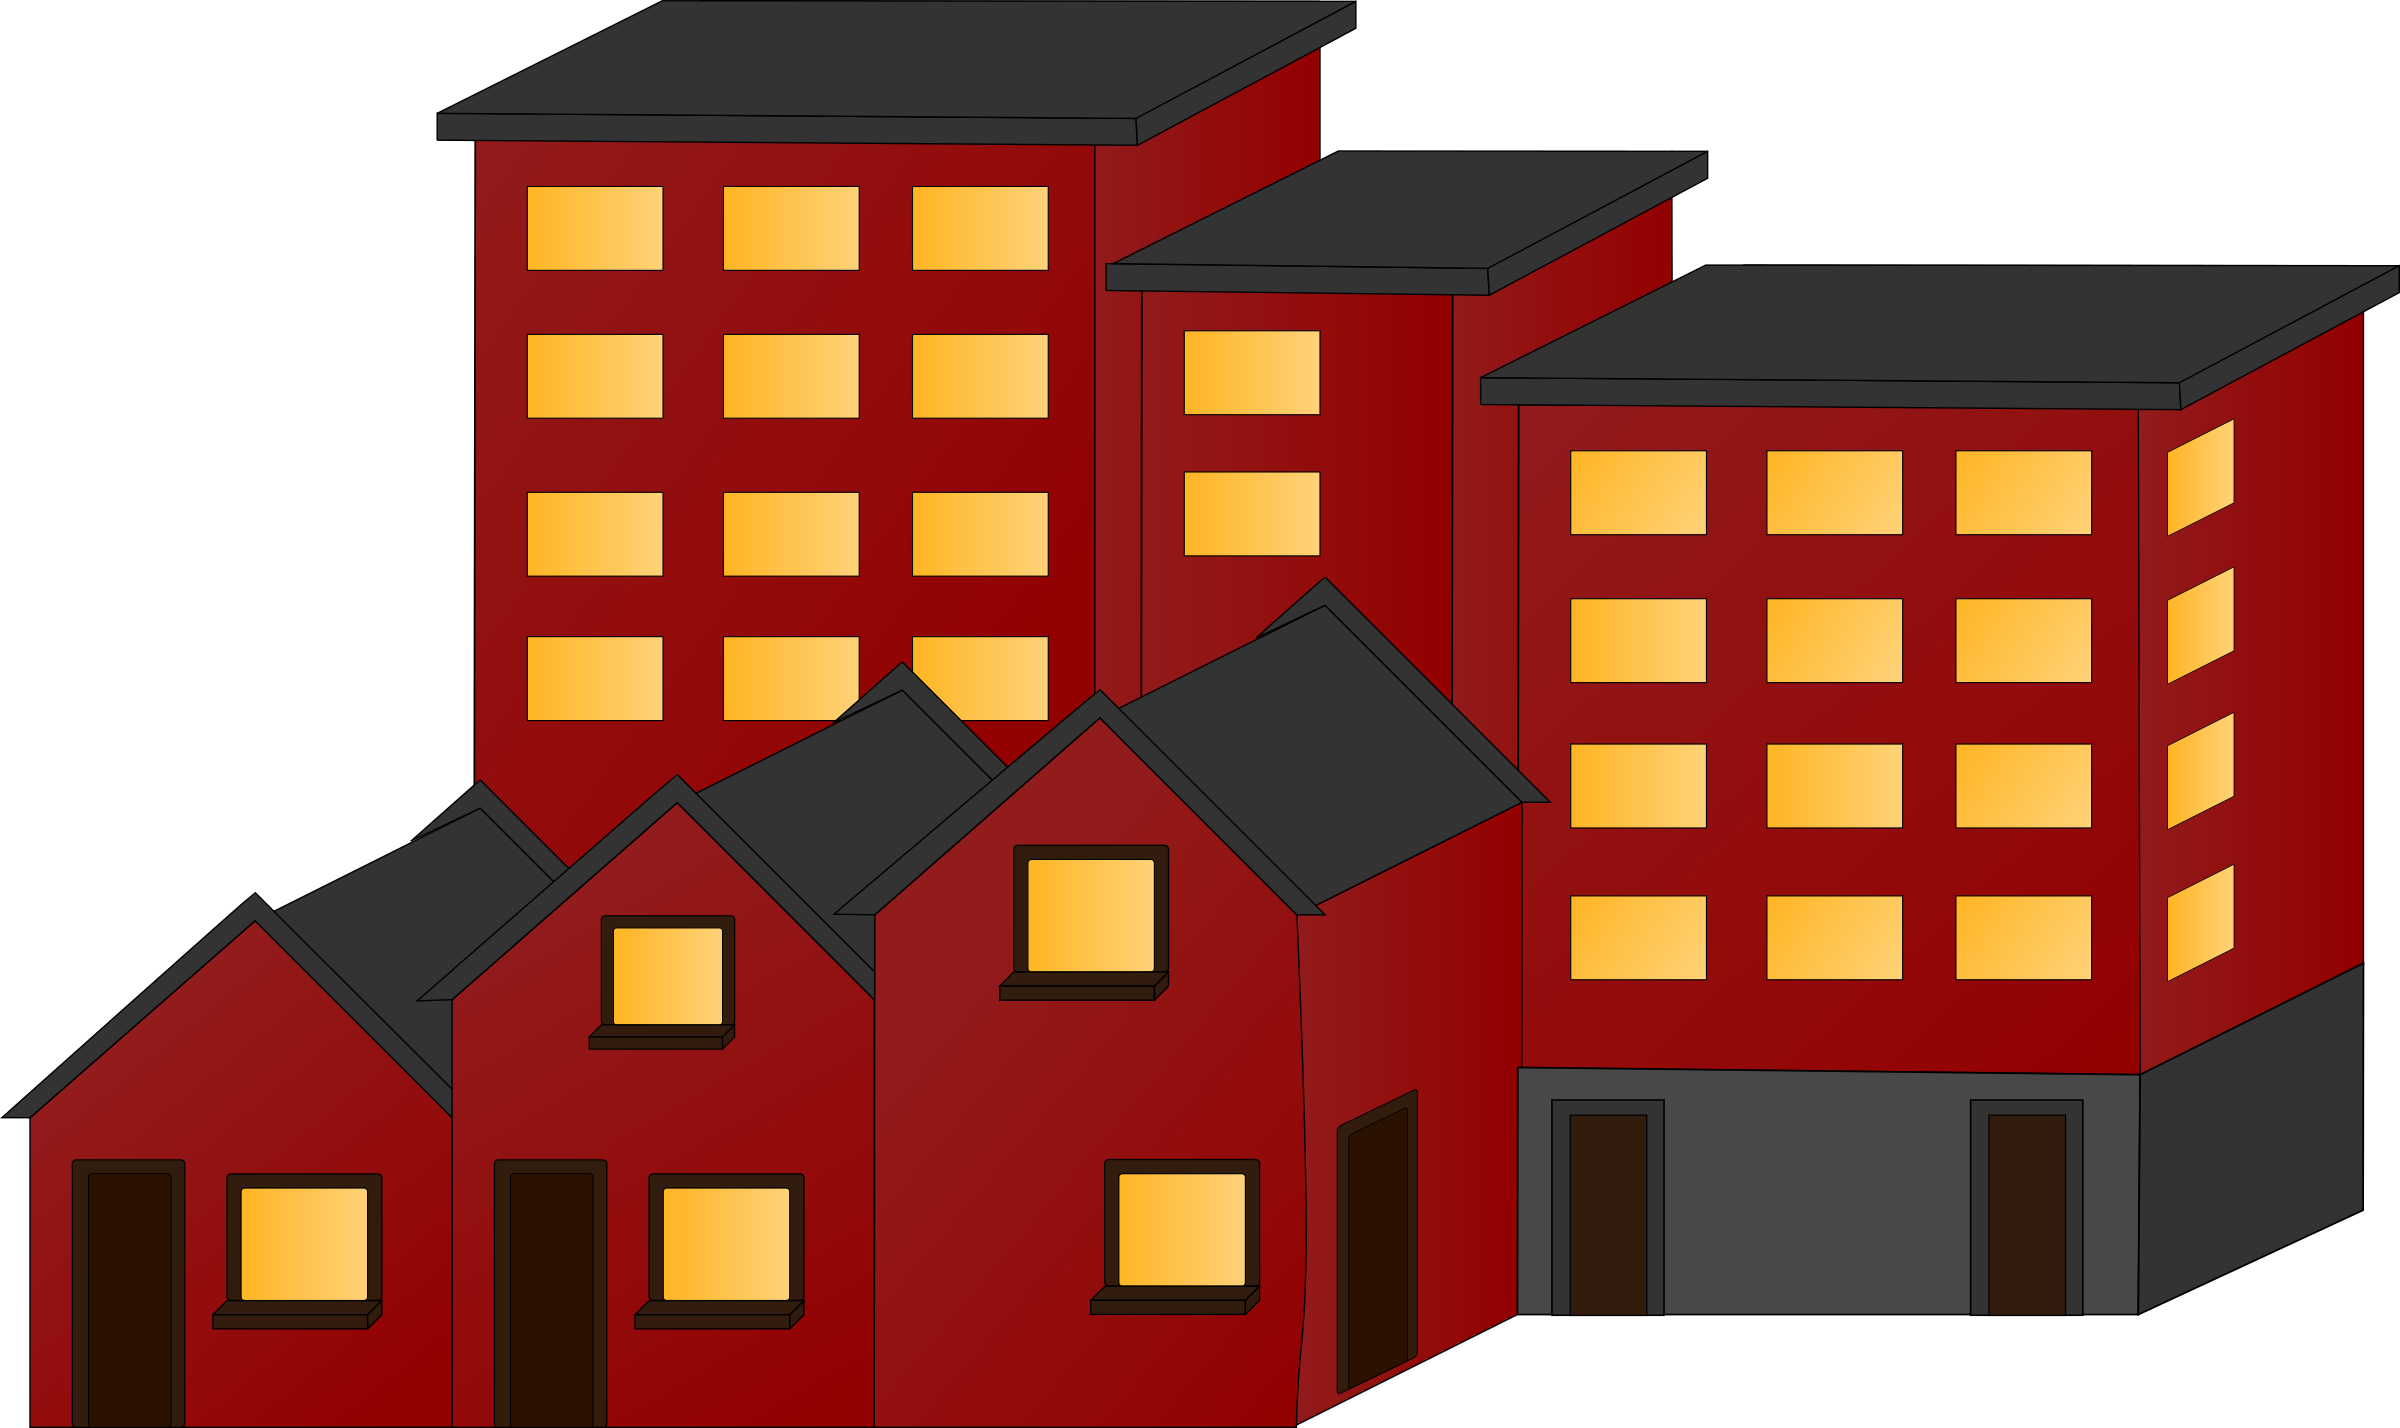 Apartments Town Houses Building Clip Art, Appartment buildings and.